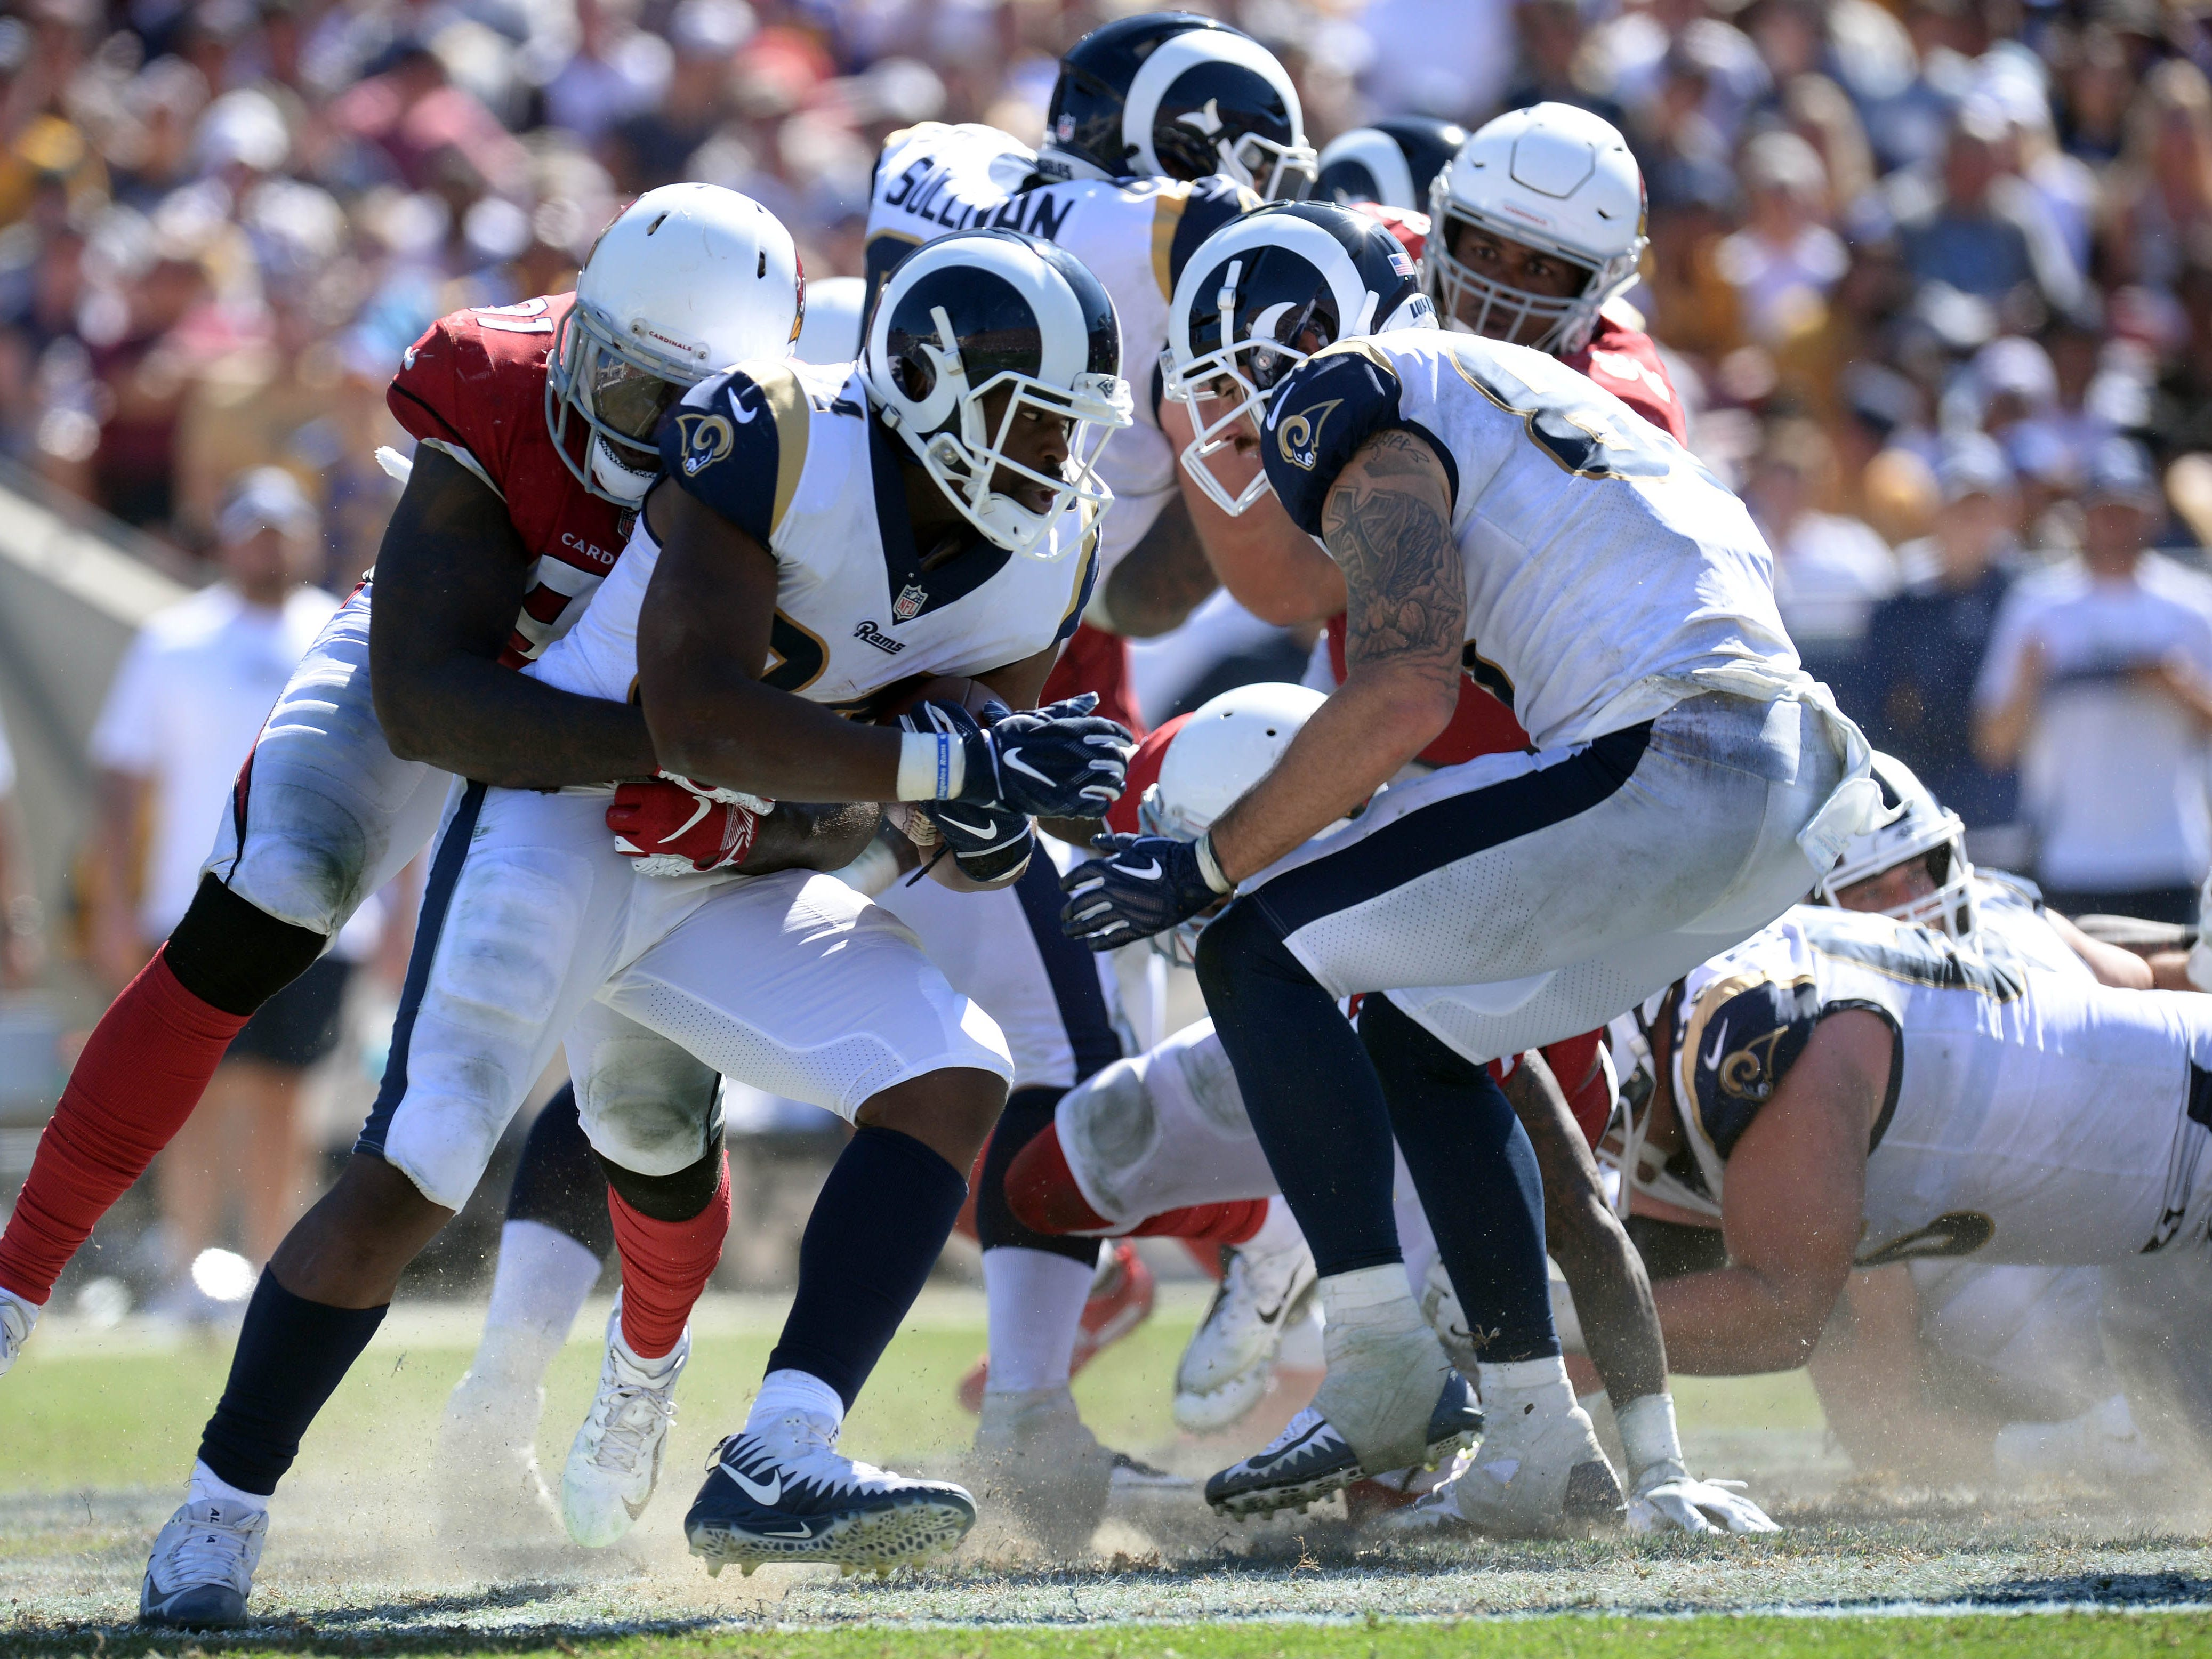 September 16, 2018; Los Angeles, CA, USA; Los Angeles Rams running back Malcolm Brown (34) is brought down by Arizona Cardinals defensive end Benson Mayowa (91) during the second half at the Los Angeles Memorial Coliseum. Mandatory Credit: Gary A. Vasquez-USA TODAY Sports